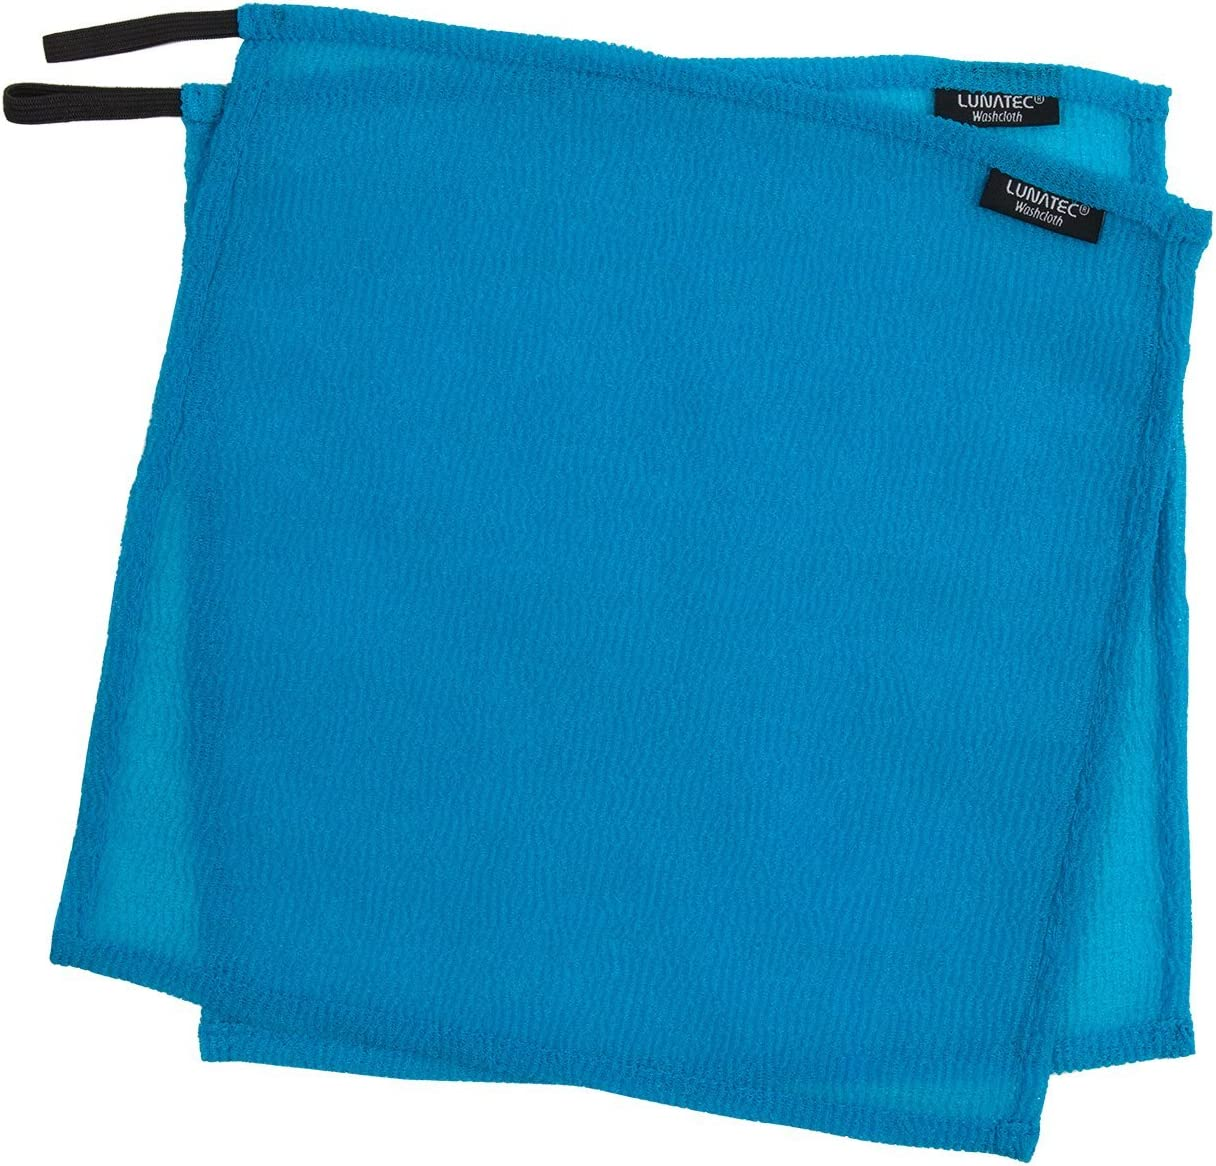 Lunatec Self-Cleaning Travel Washcloth. Odor-Free, Quick Drying & Light Exfoliation. Wash Cloth is Ideal for Camping, Backpacking, Showers, Gyms & Boating. Compliments Any Towel.